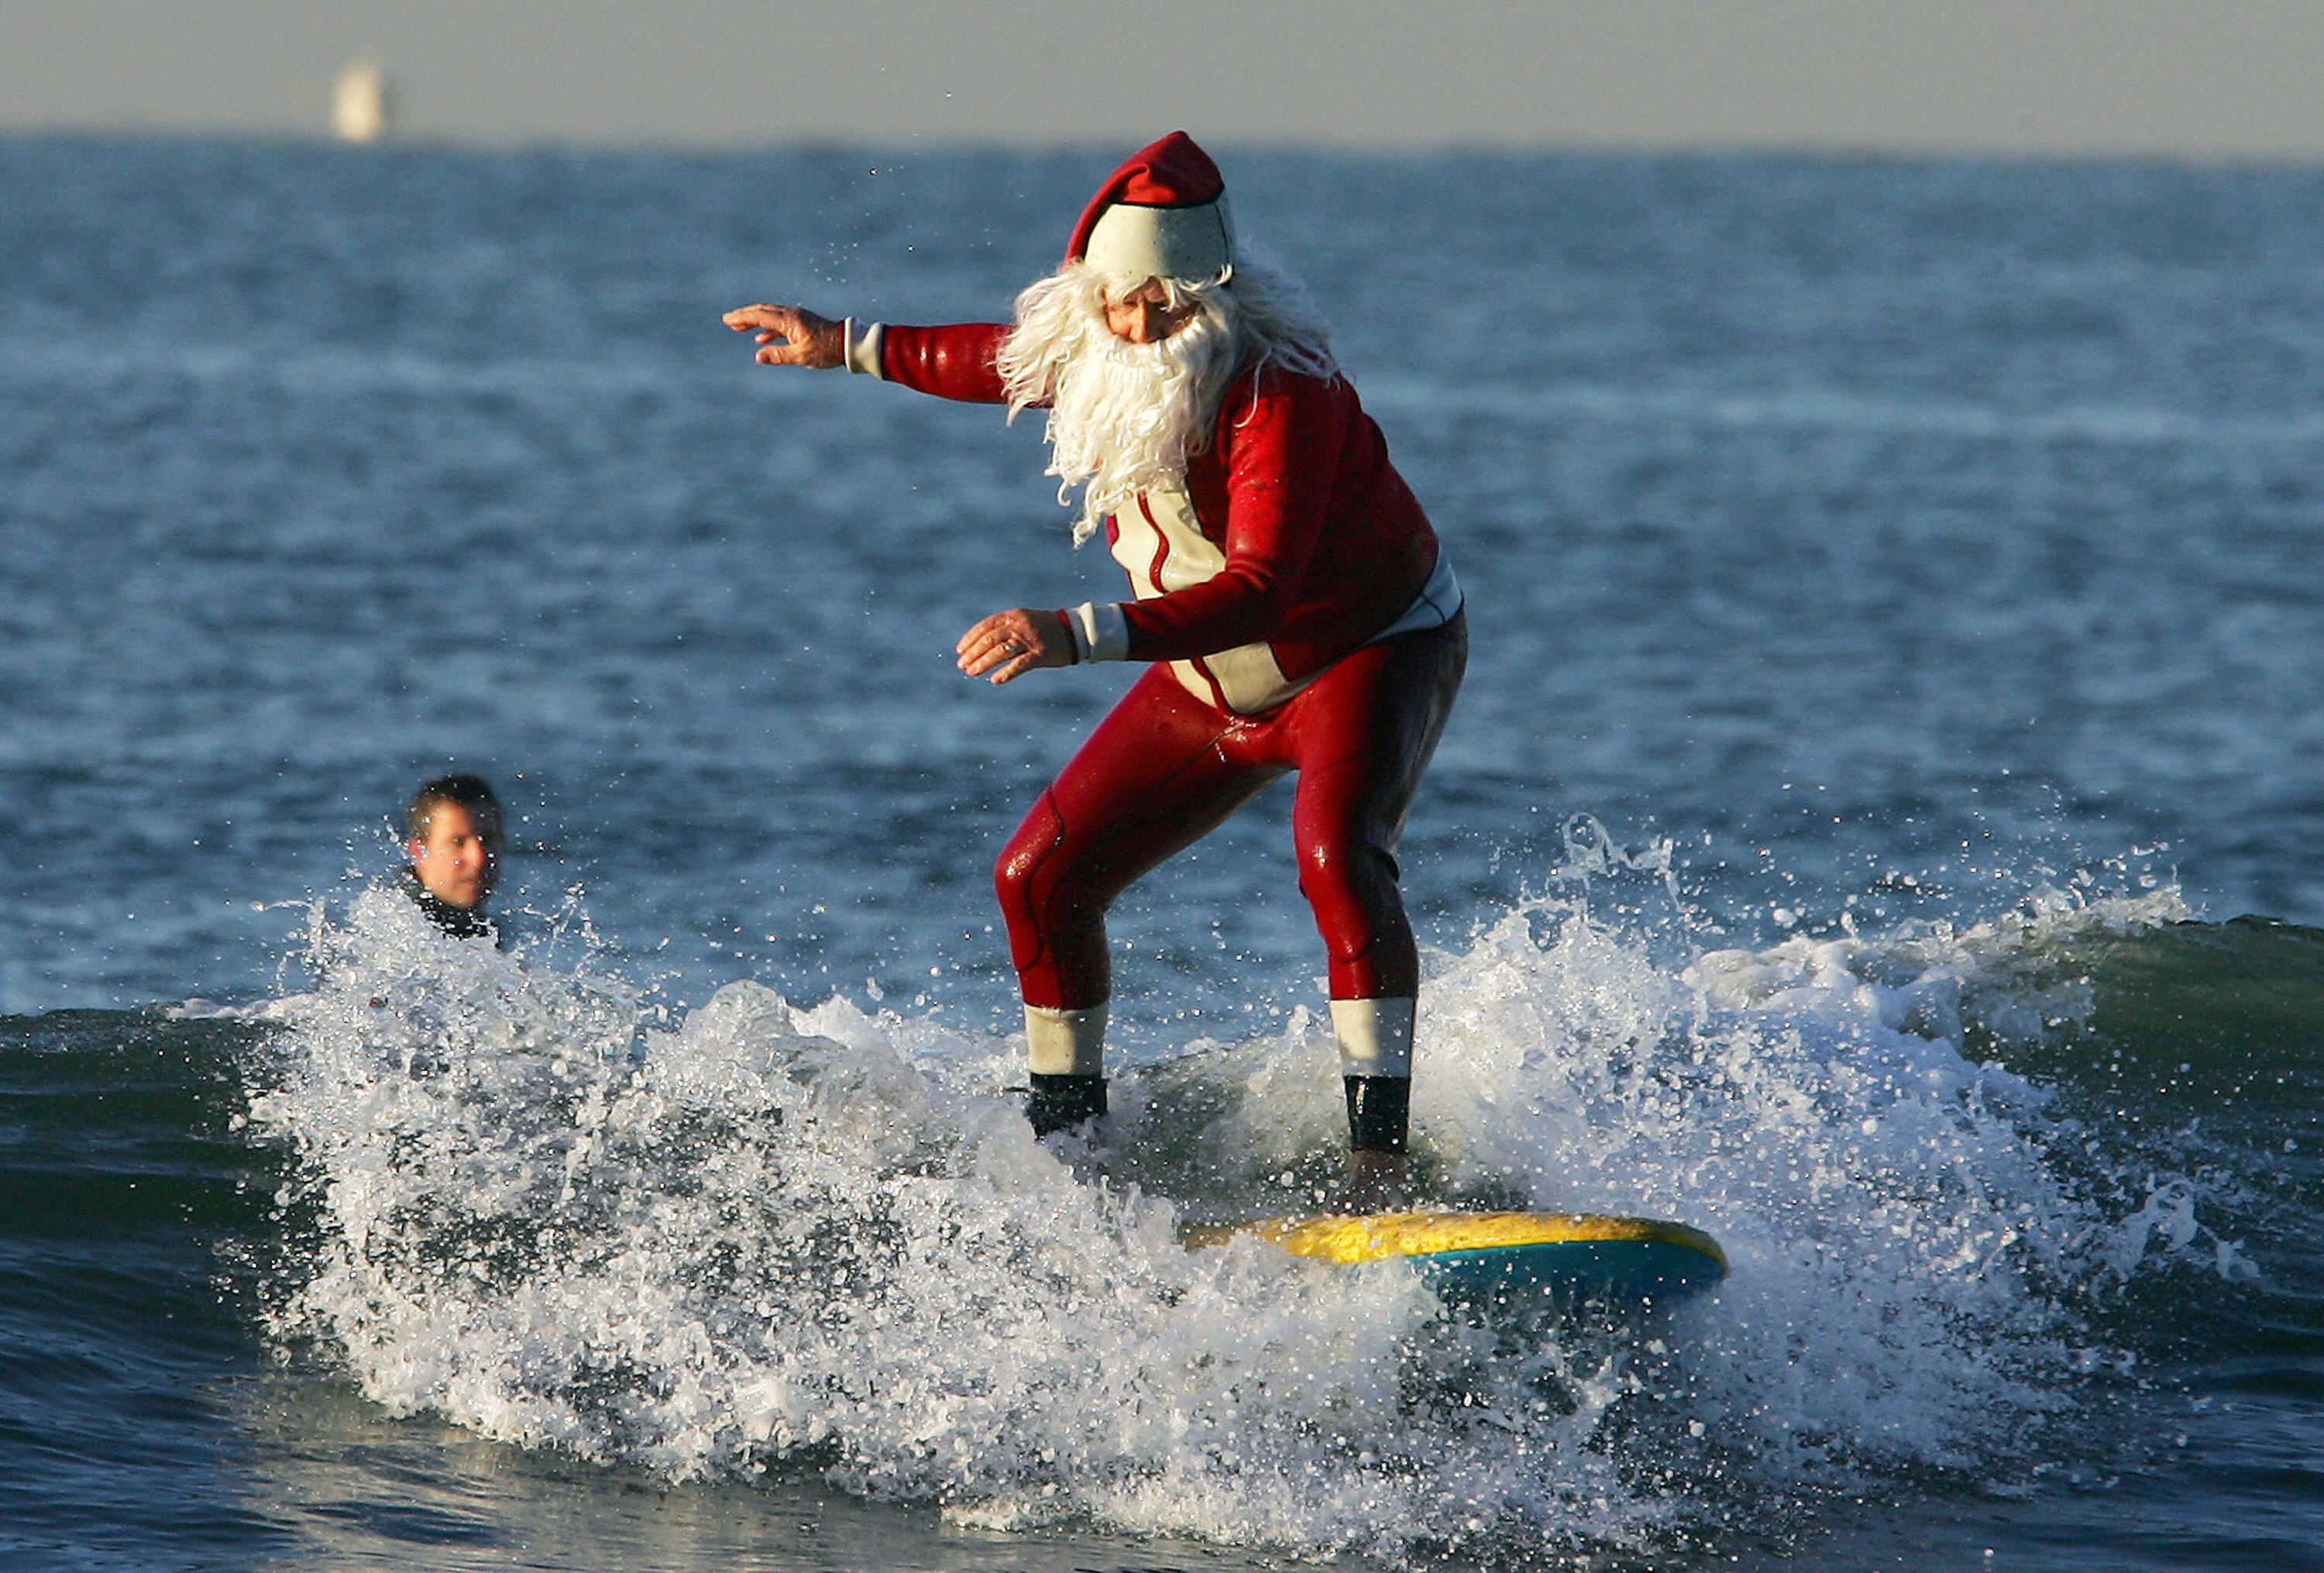 Santa Hits the waves mod